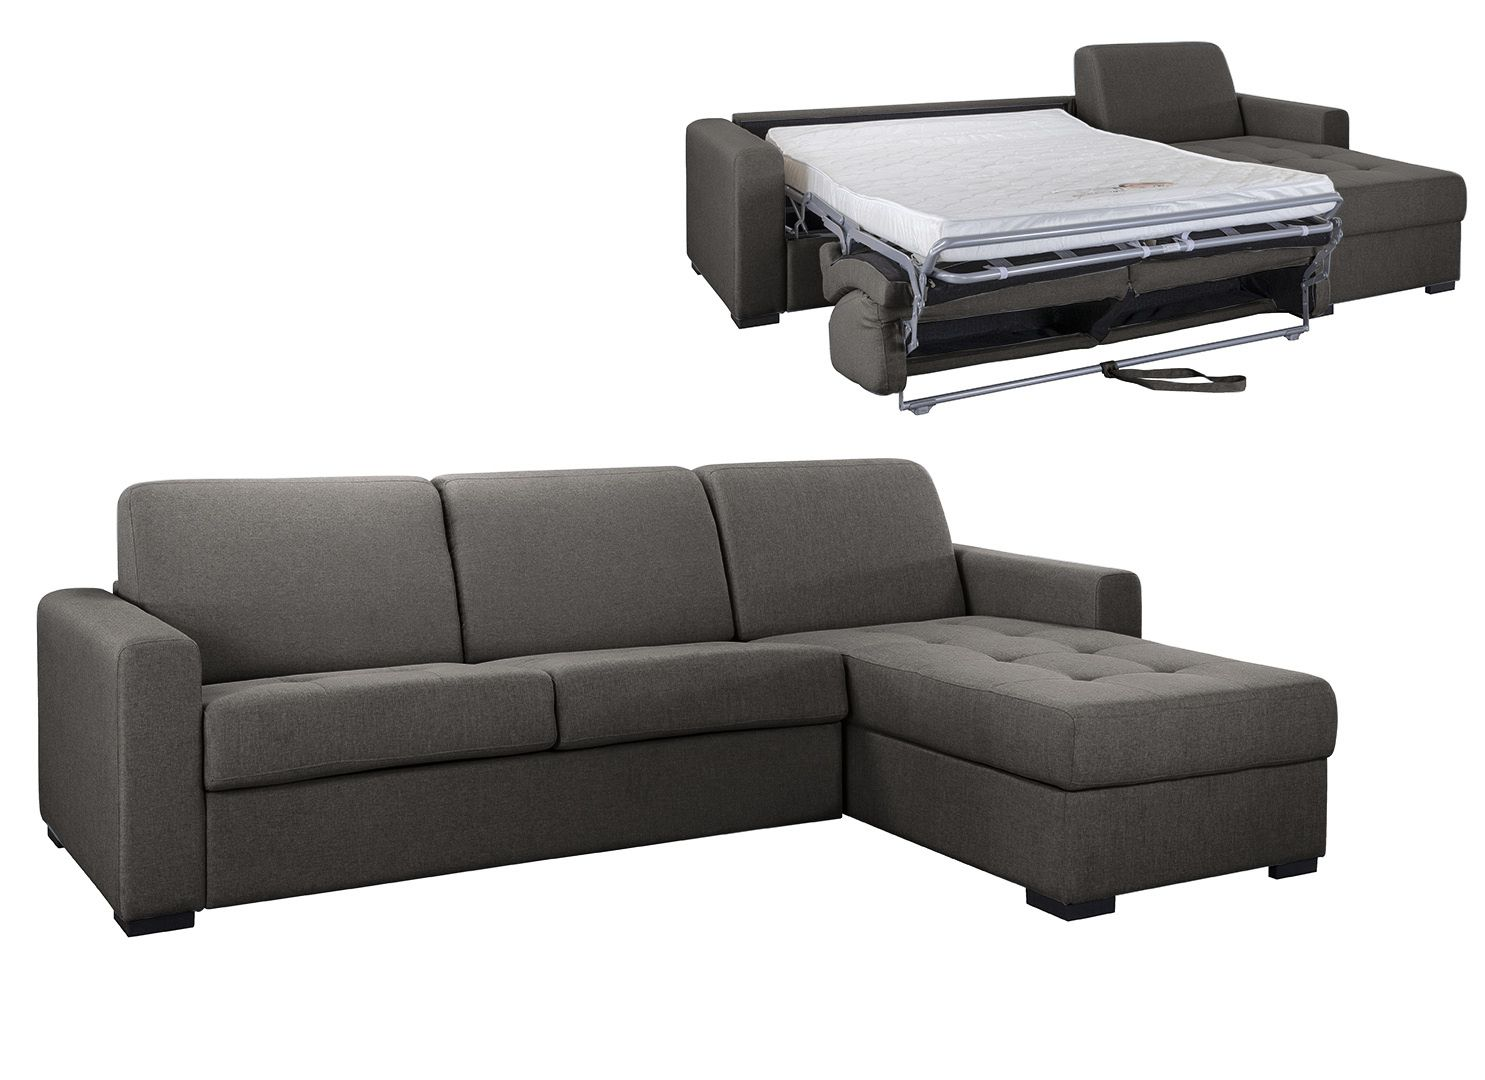 Angle Convertible pour usage QUOTIDIEN «ANGELICA» -  COUCHAGE 140cm